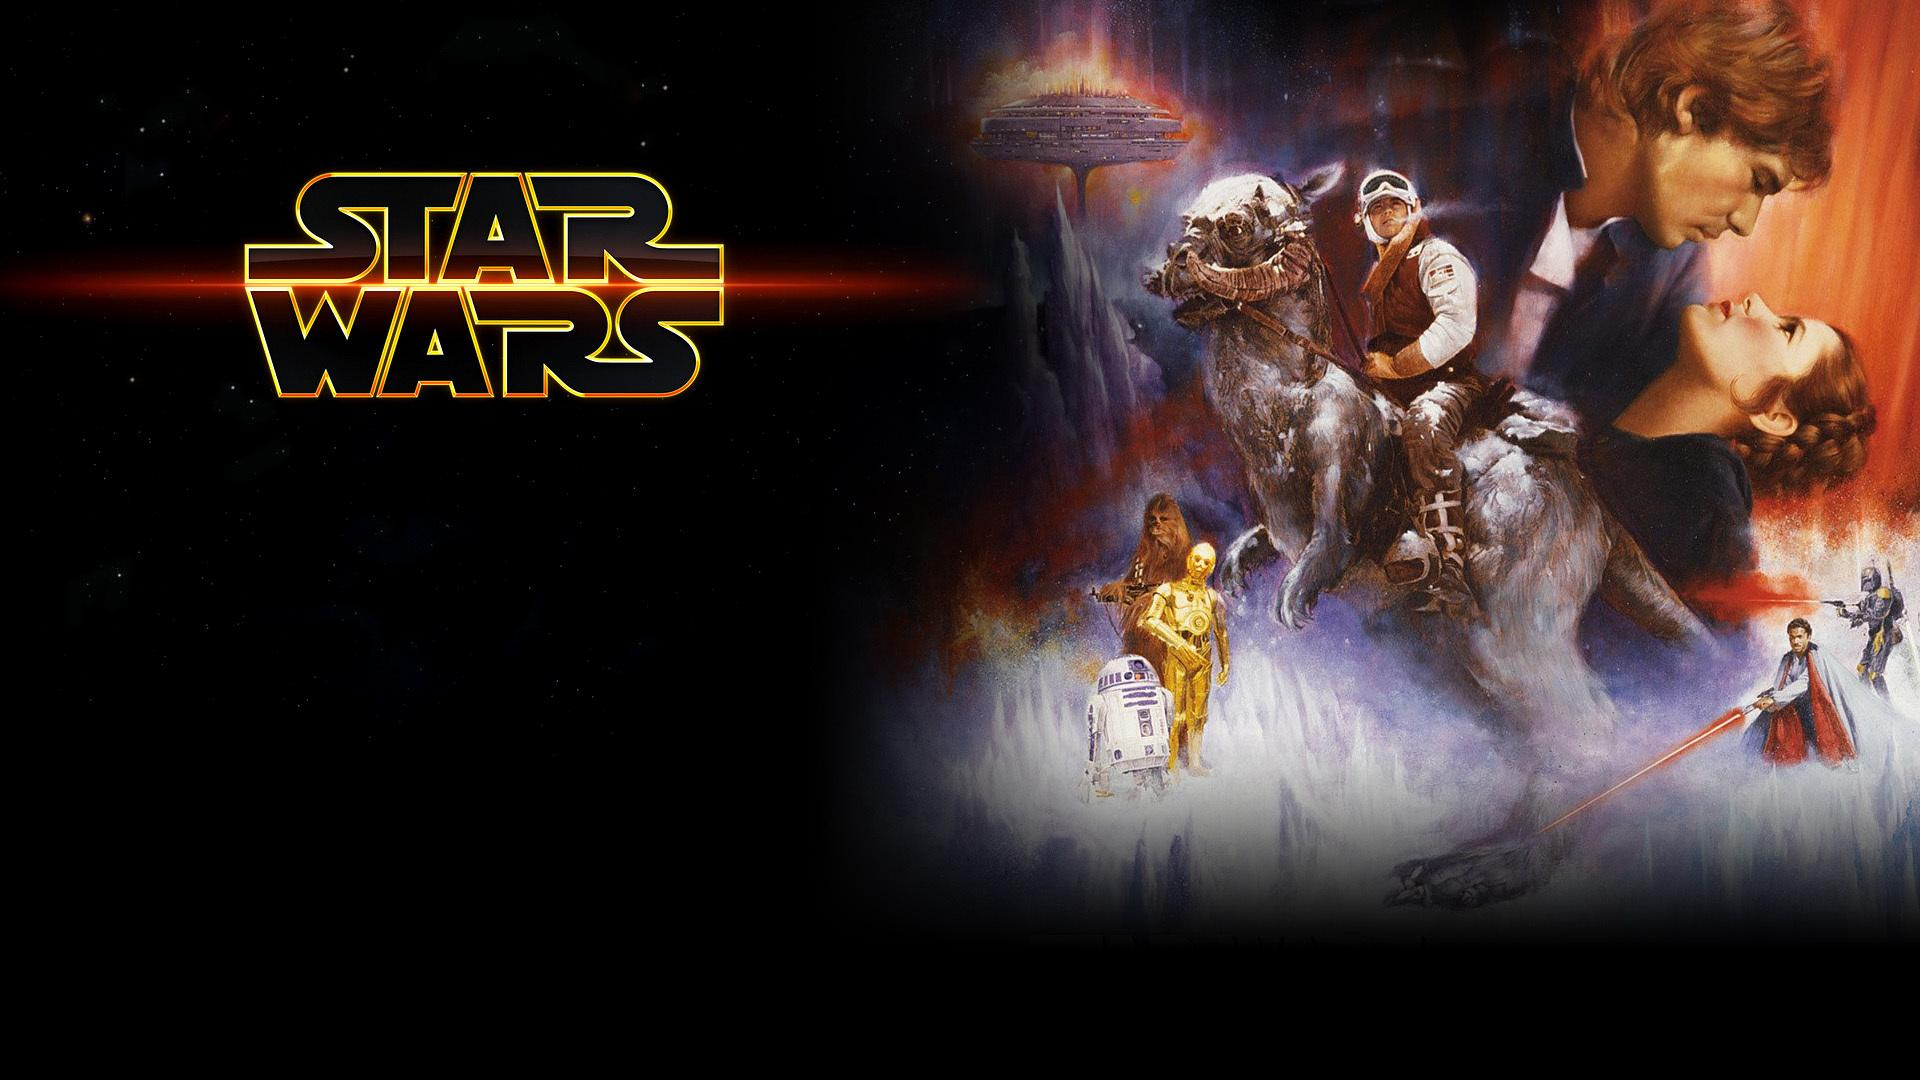 Star Wars Episode V: The Empire Strikes Back HD Wallpapers